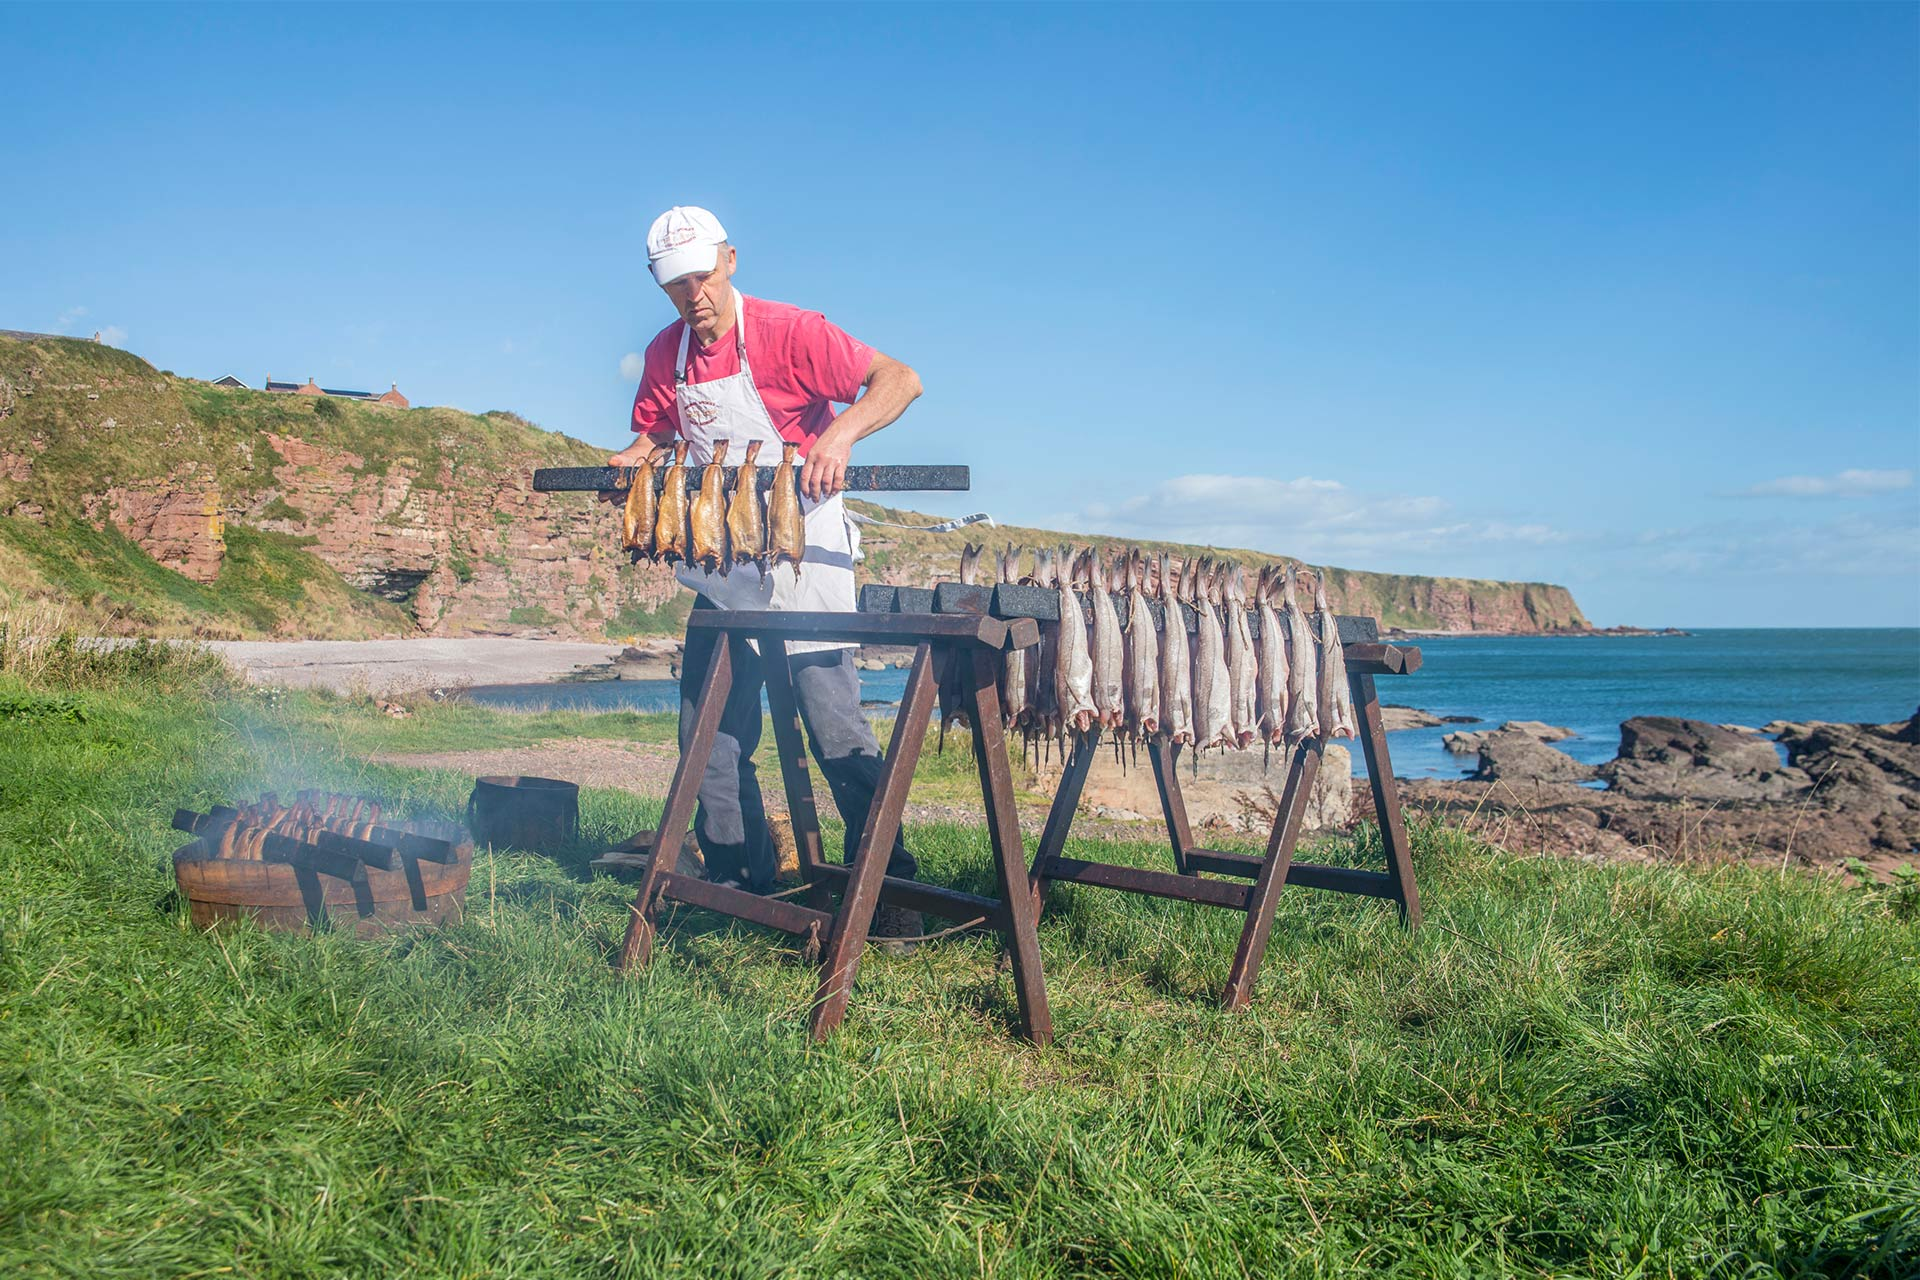 Arbroath smokies being prepared by Iain R Spink on the beach at Auchmithie © VisitScotland / Kenny Lam